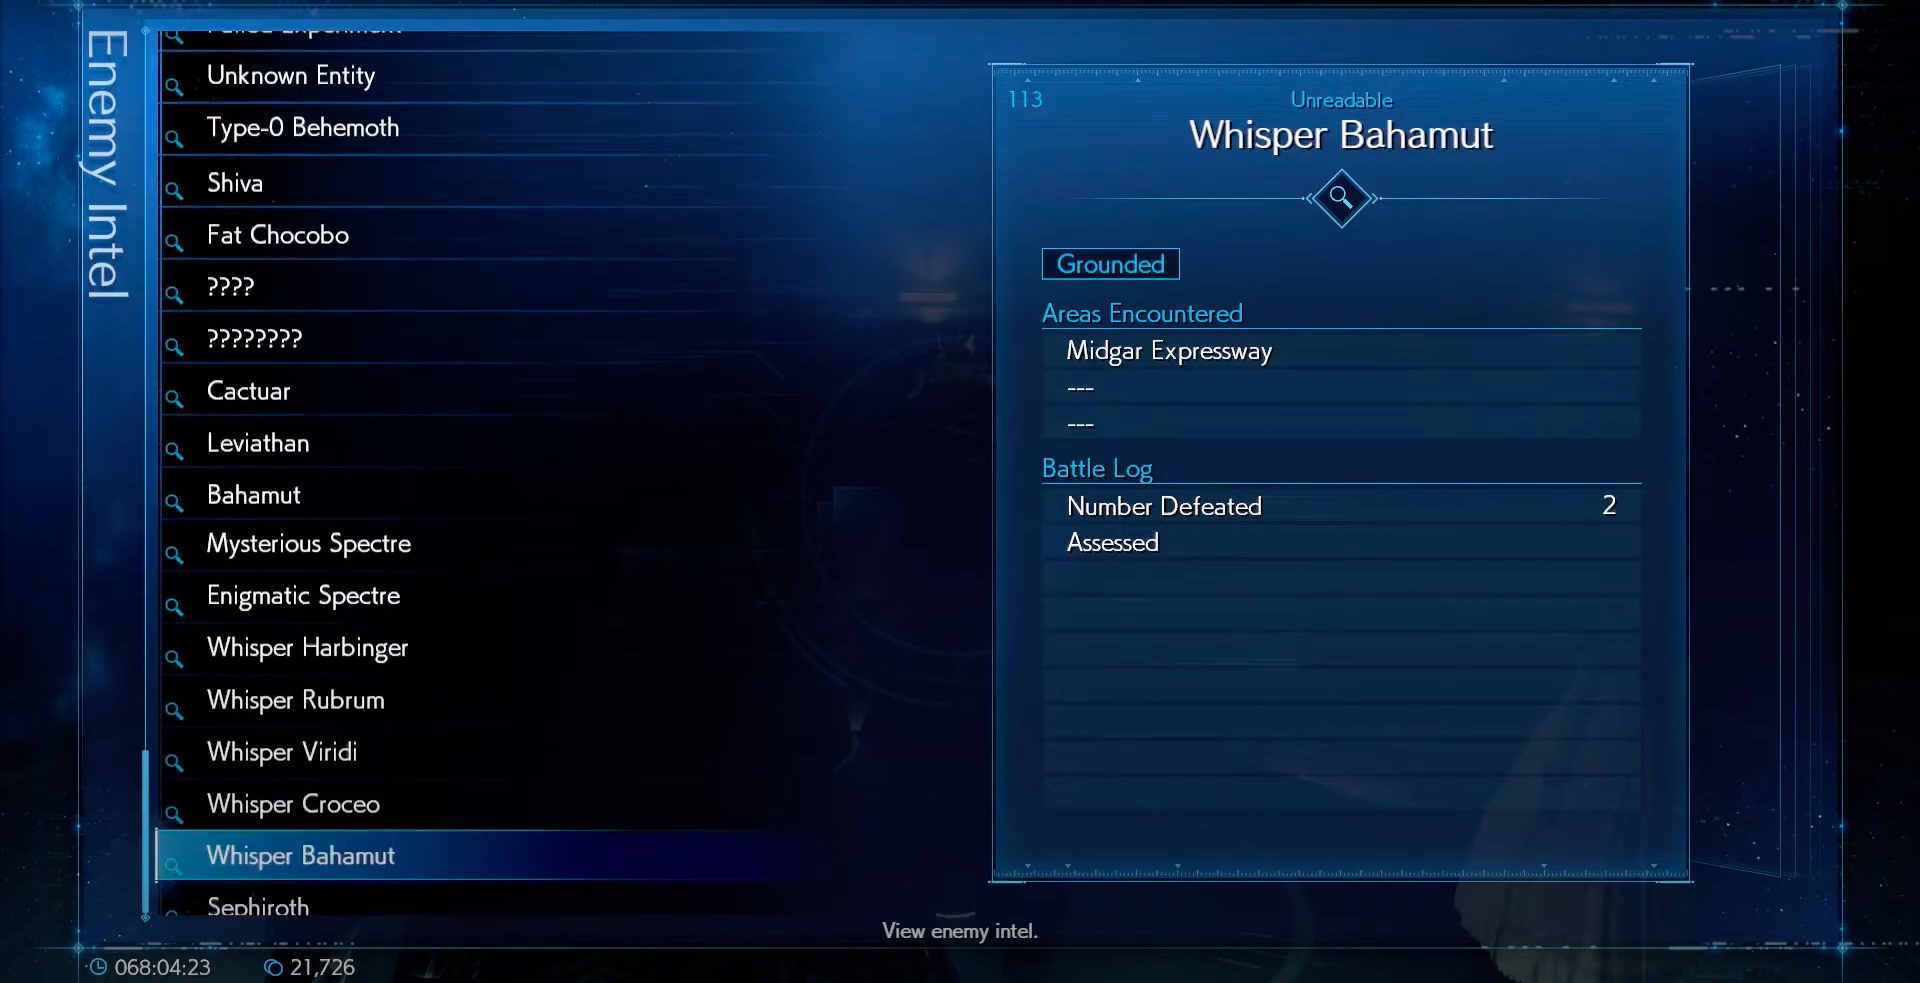 Enemy Intel: Whisper Bahamut